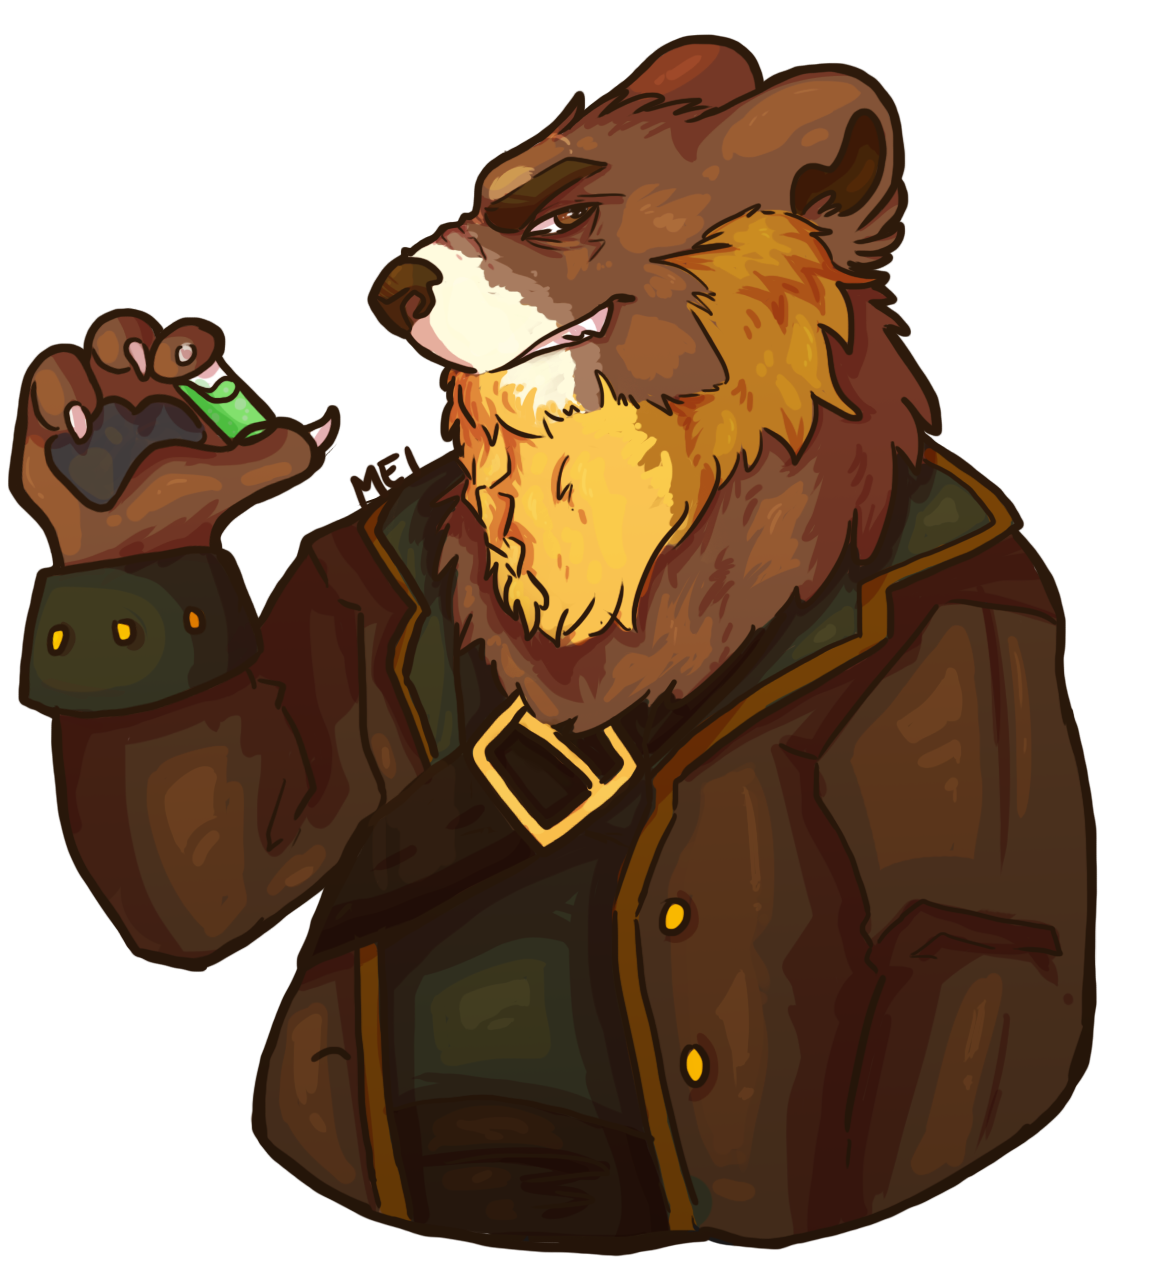 ricard_by_sheeplytte-dbvait2.png